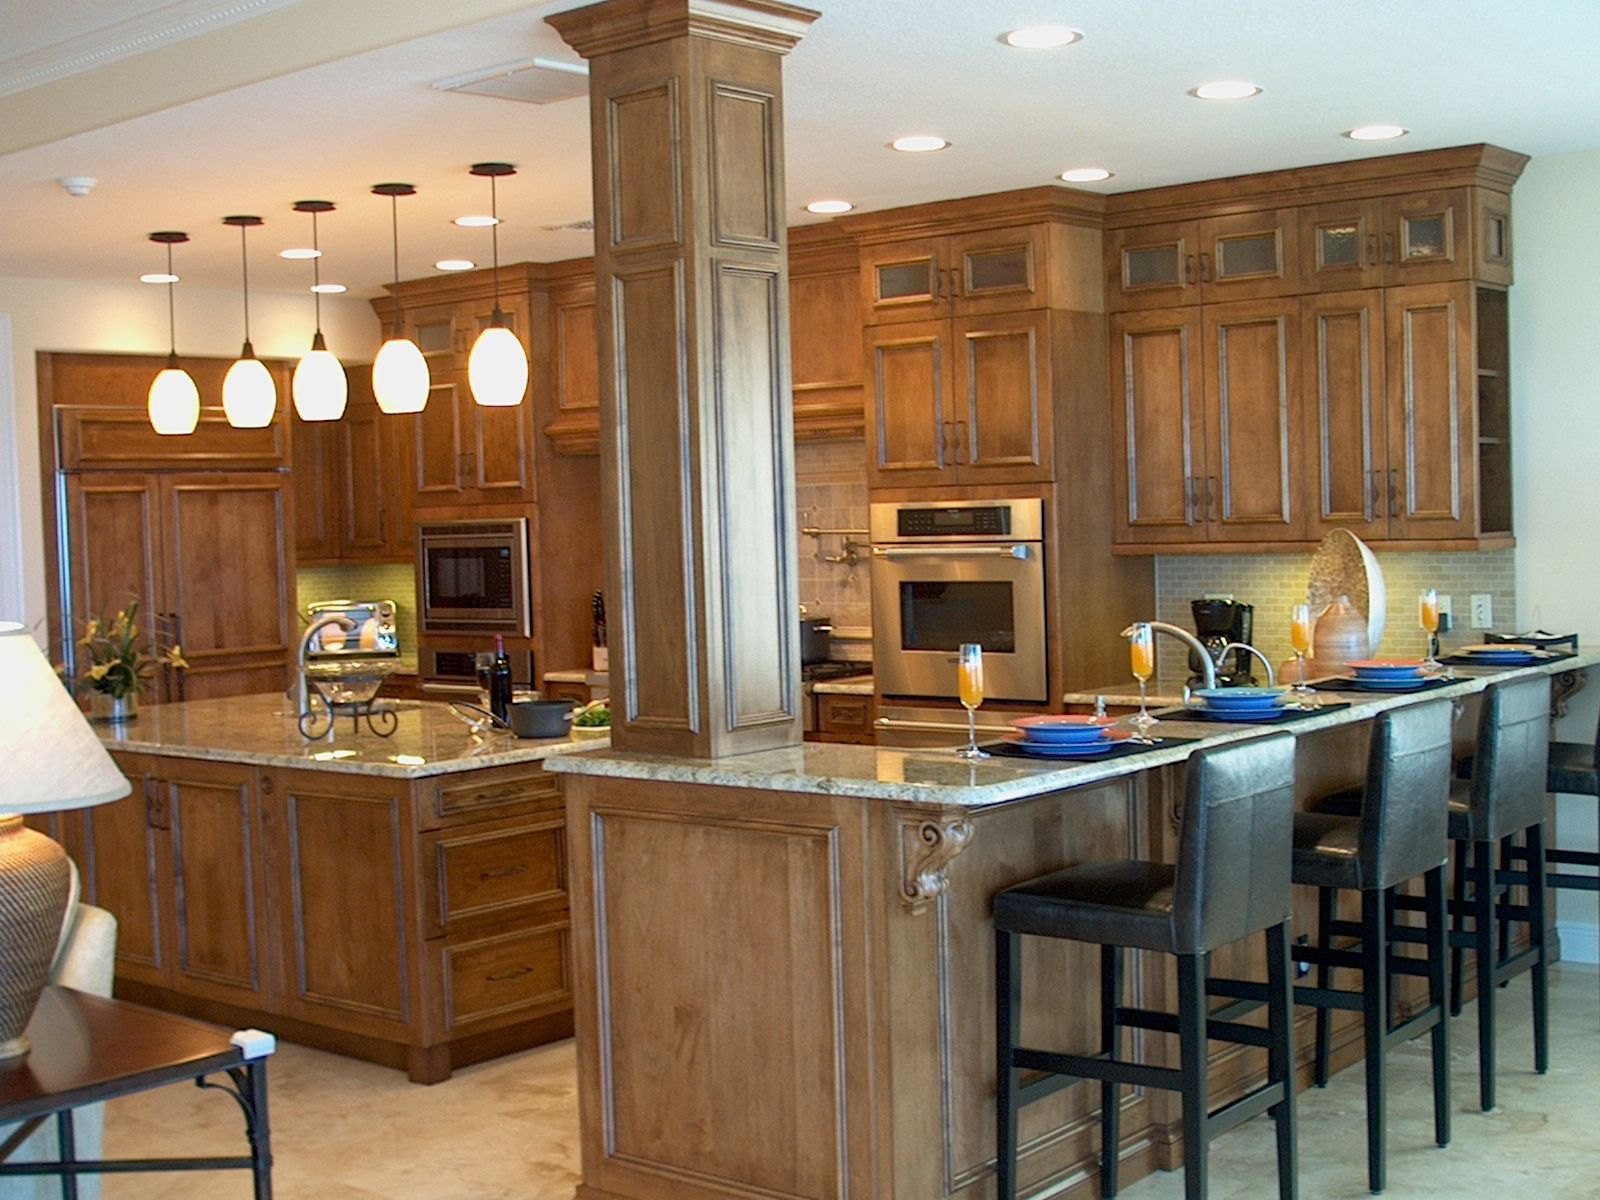 Handmade Custom Kitchen, Mediterranean Style By Traditions